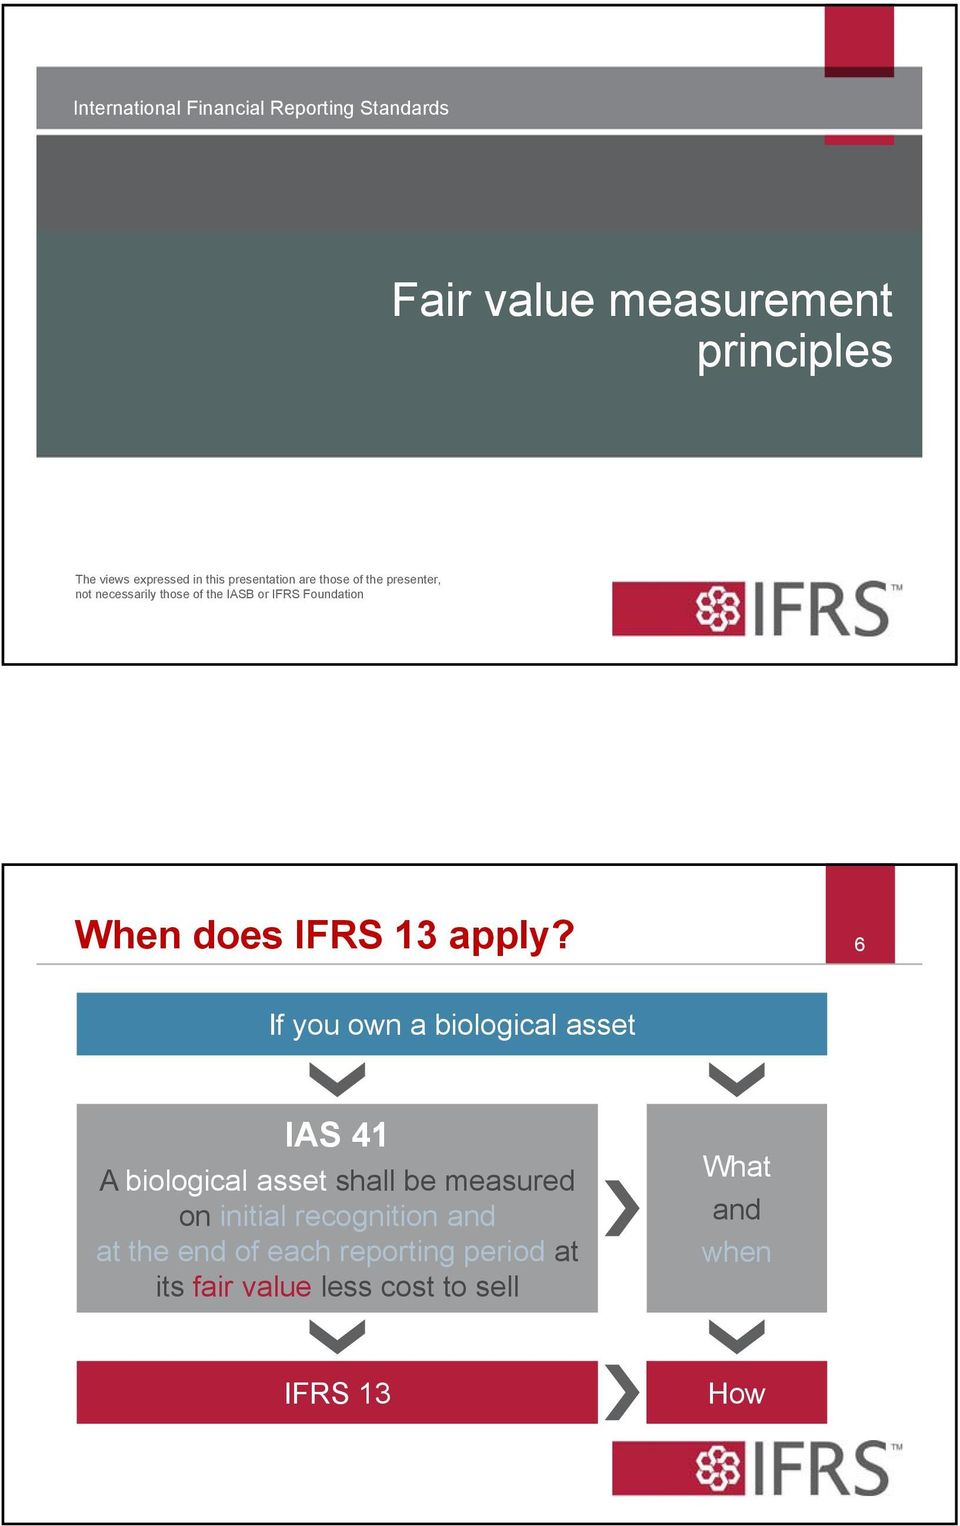 IFRS 13 apply?